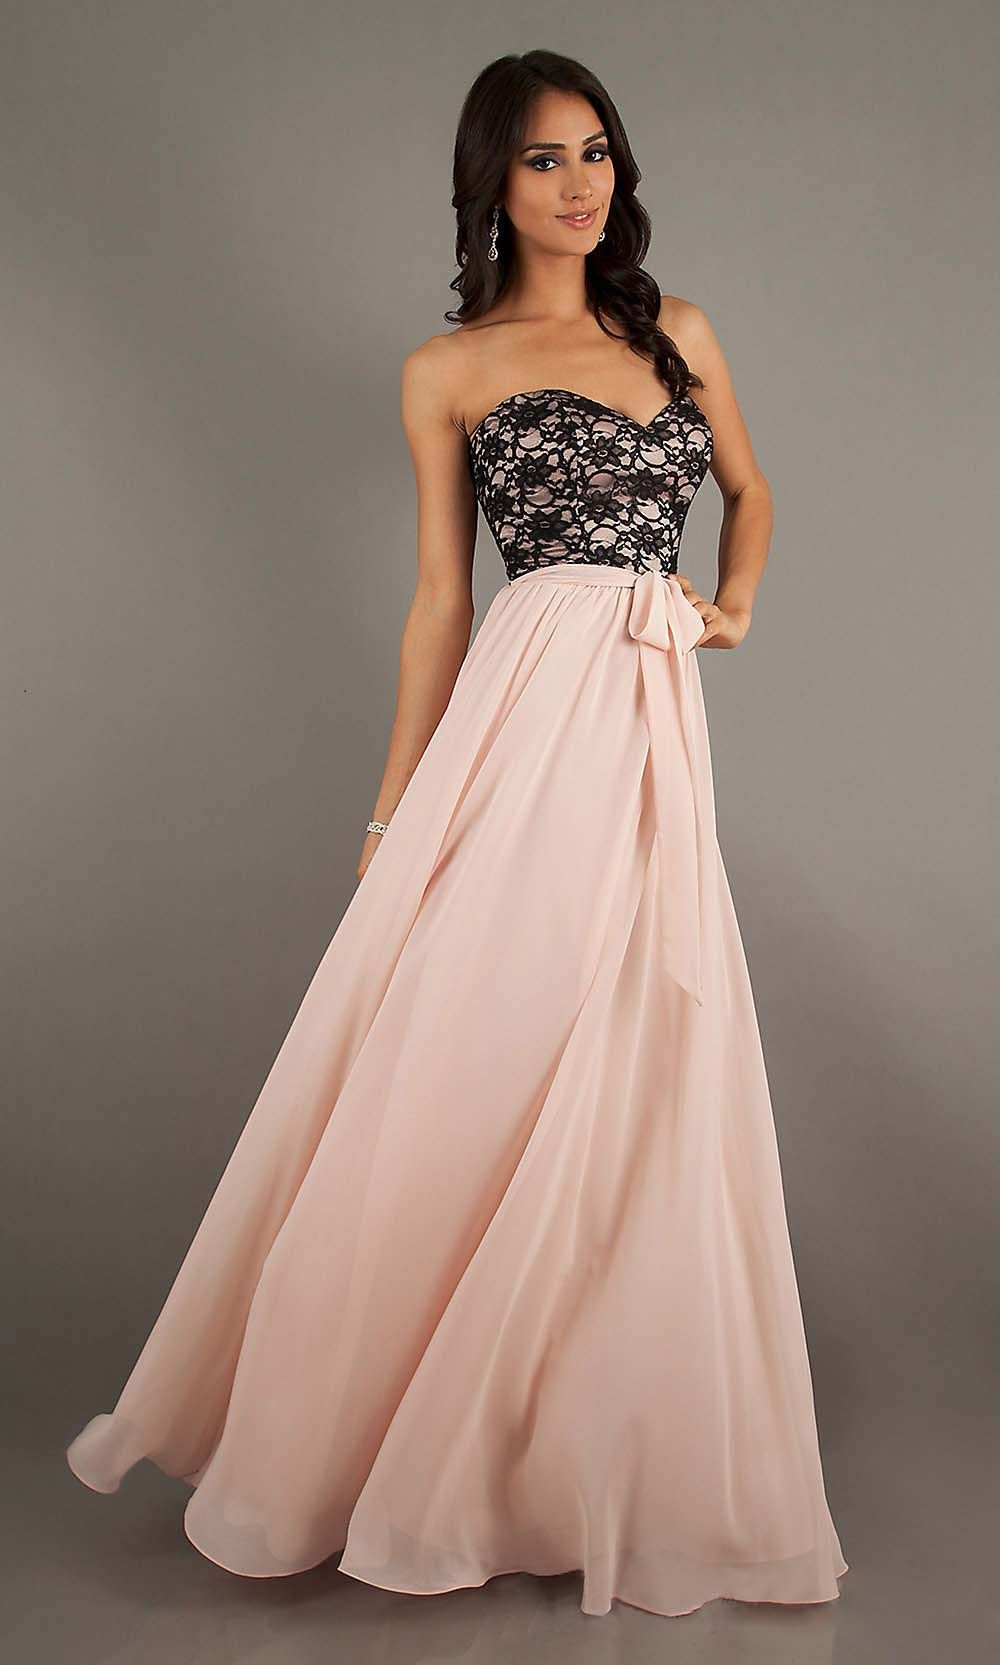 Bridesmaid dresses ultimate dresses designer dresses wedding bridesmaid dresses ultimate dresses designer dresses wedding dresses ombrellifo Image collections